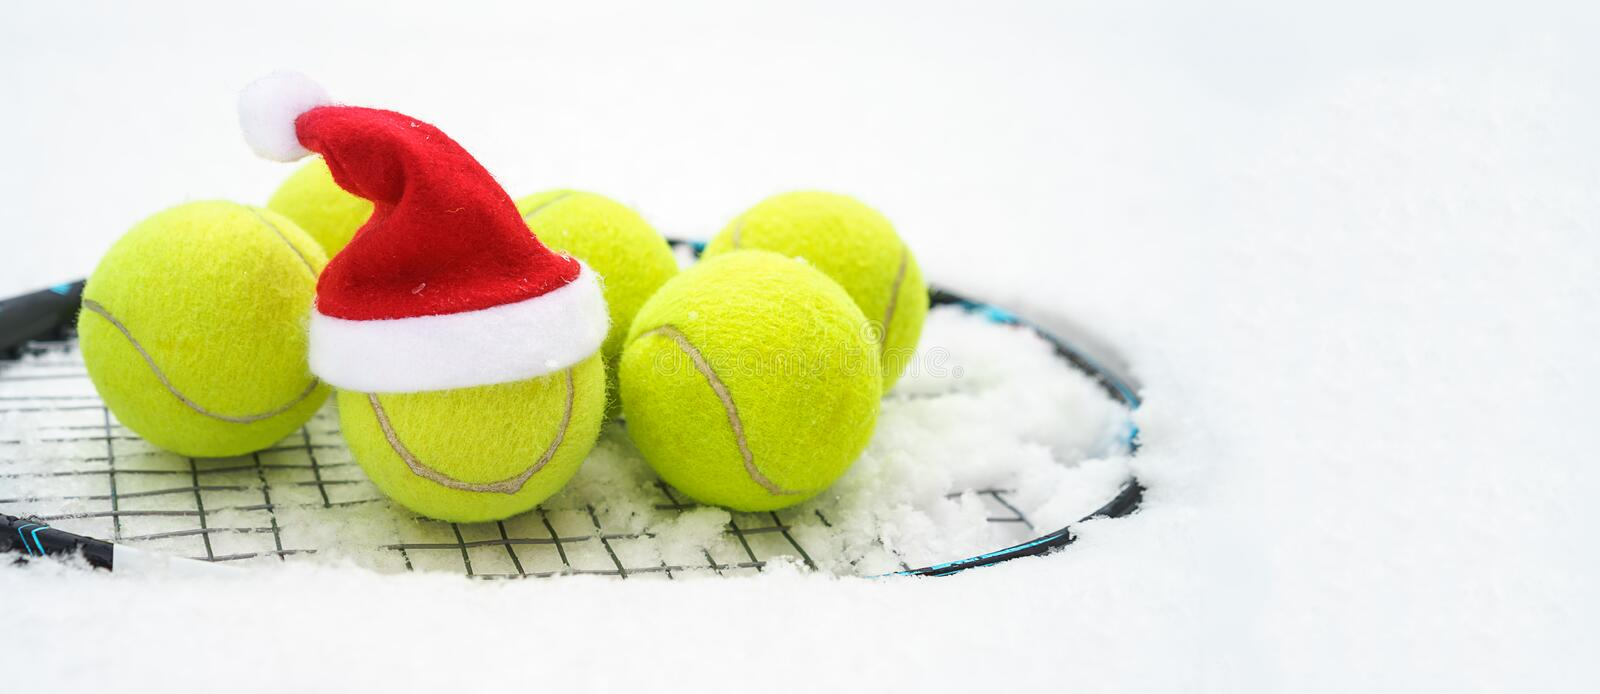 Santa hat on tennis ball, set of tennis balls on racket on white snow winter background. Merry Christmas and New year concept with royalty free stock photos